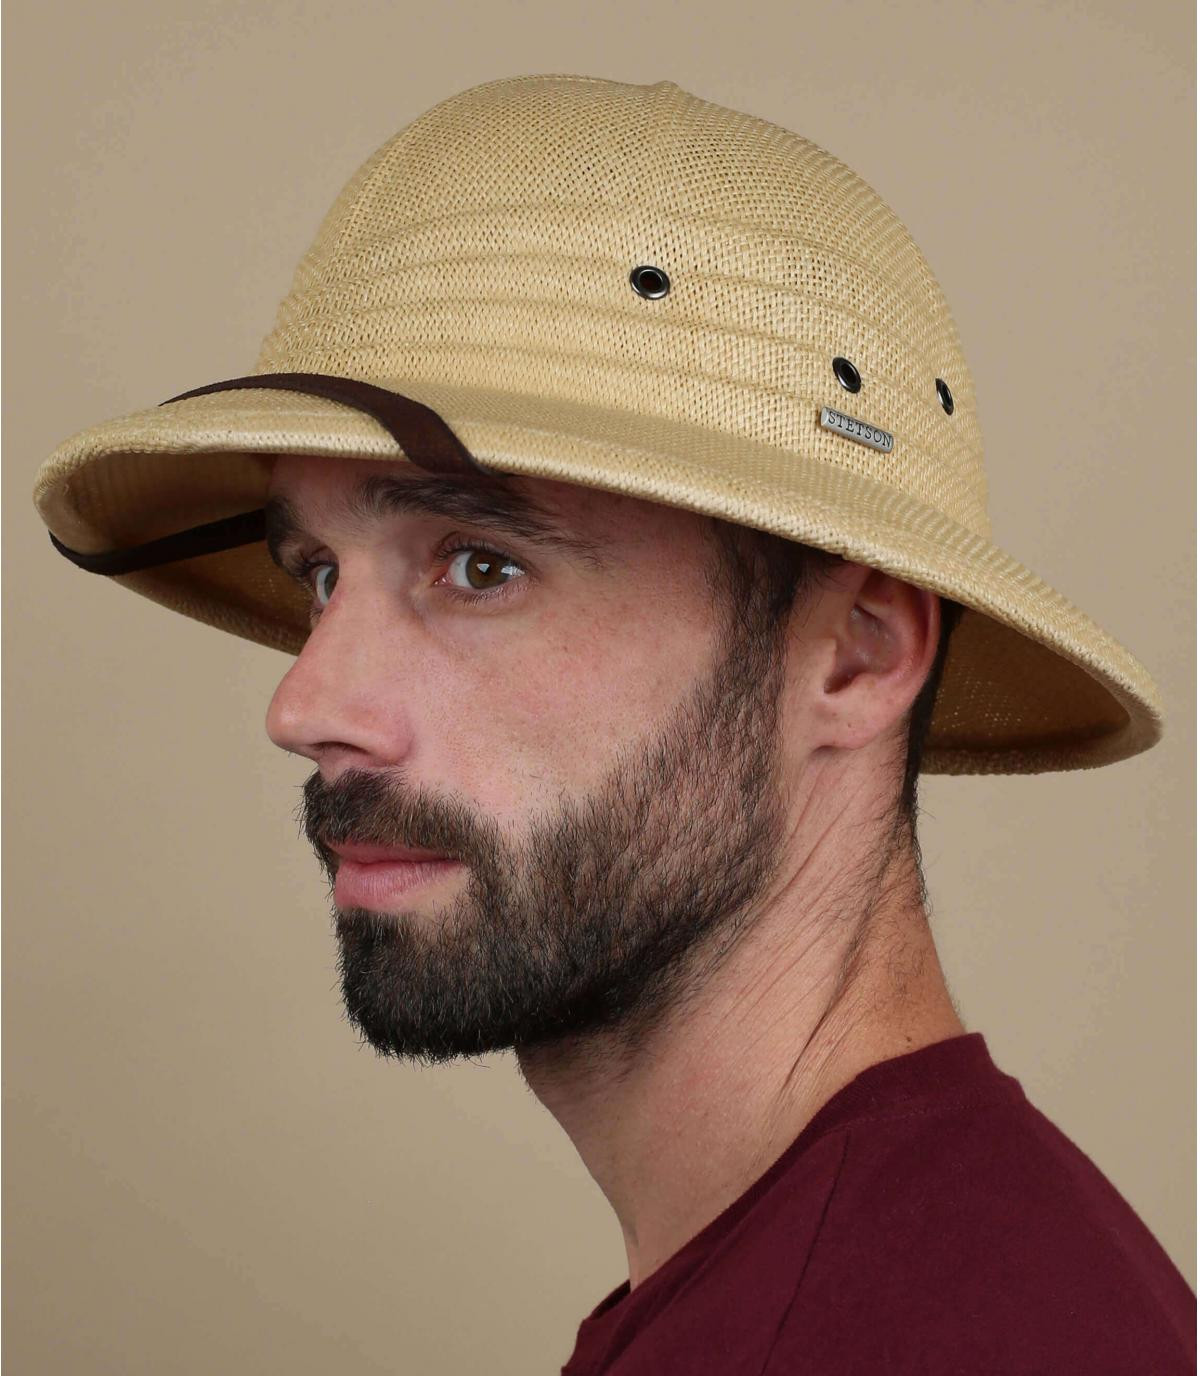 Stetson colonial hat